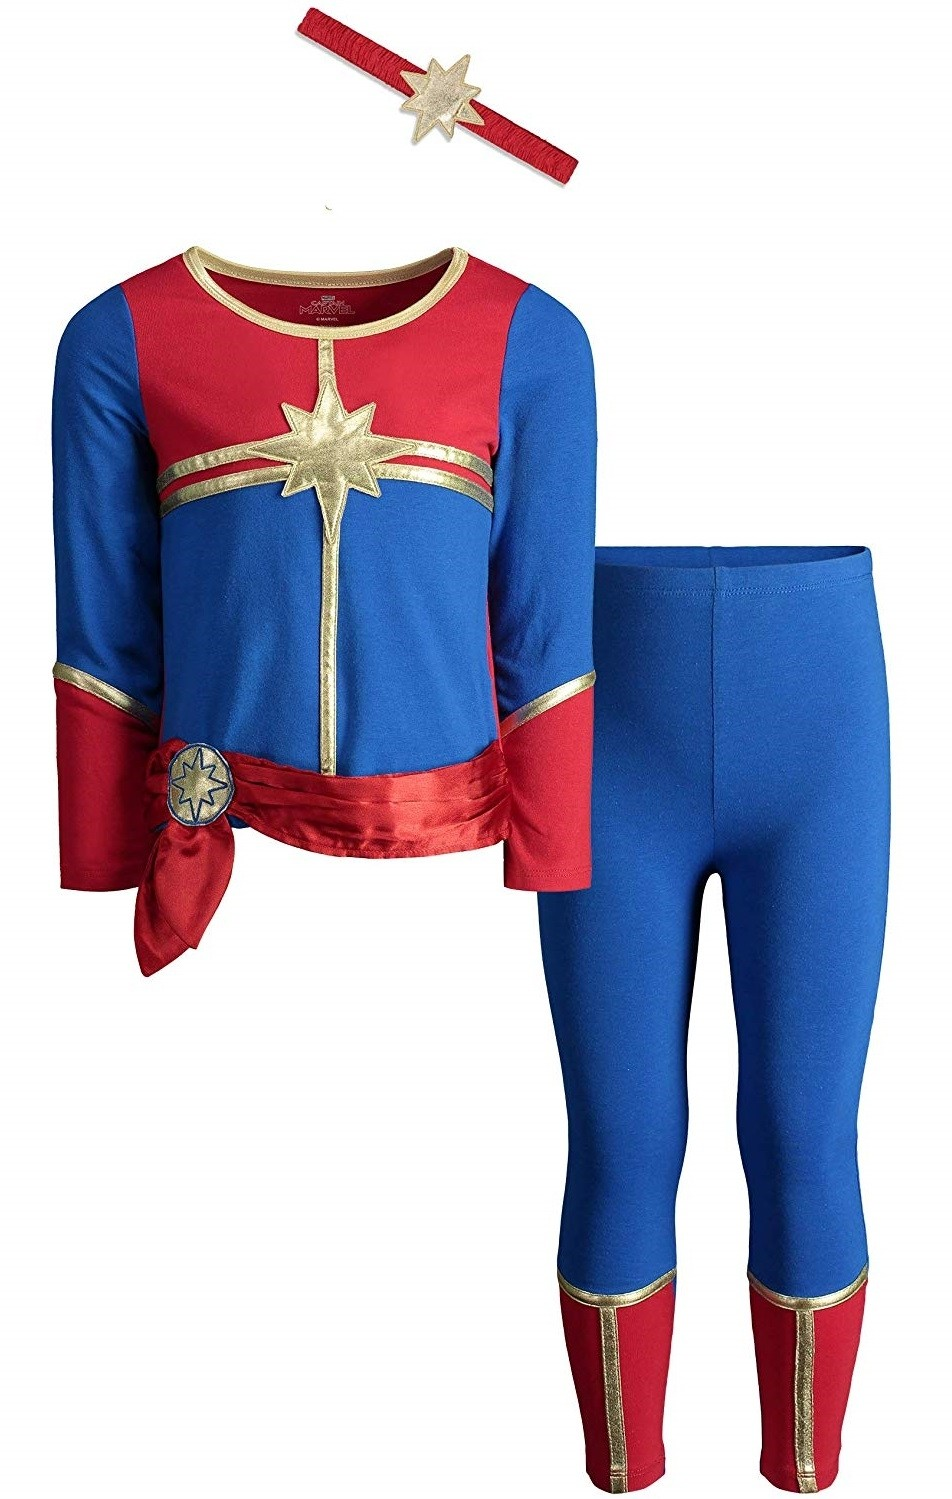 Captain Marvel Toddler Costume A Mighty Girl The most common captain marvel costume kids material is cotton. captain marvel toddler costume a